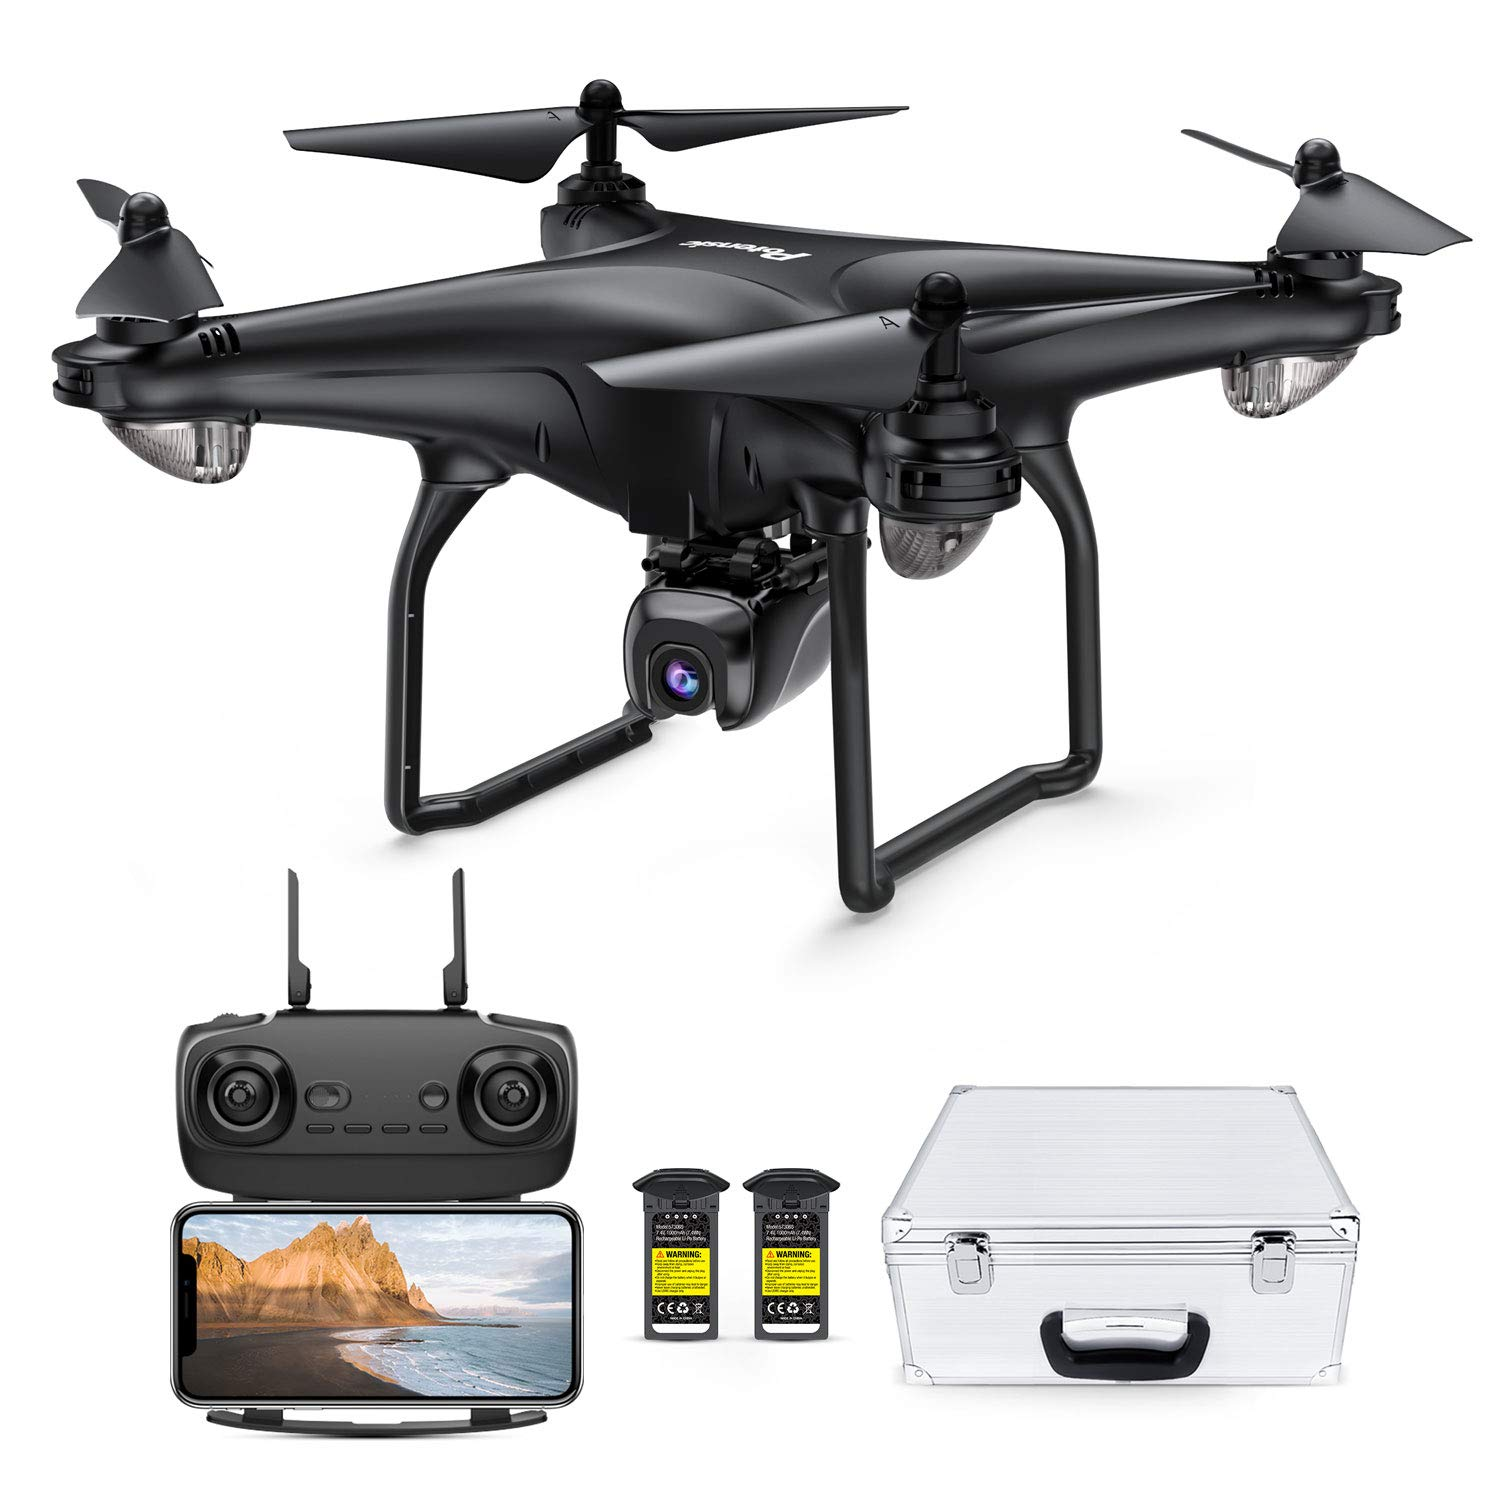 Potensic D58, FPV Drone with 1080P Camera, 5G WiFi HD Live Video, GPS Auto Return, RC Quadcopter for Adult, Portable Case, 2 Battery, Follow Me, Easy Selfie Beginner, Expert by Potensic